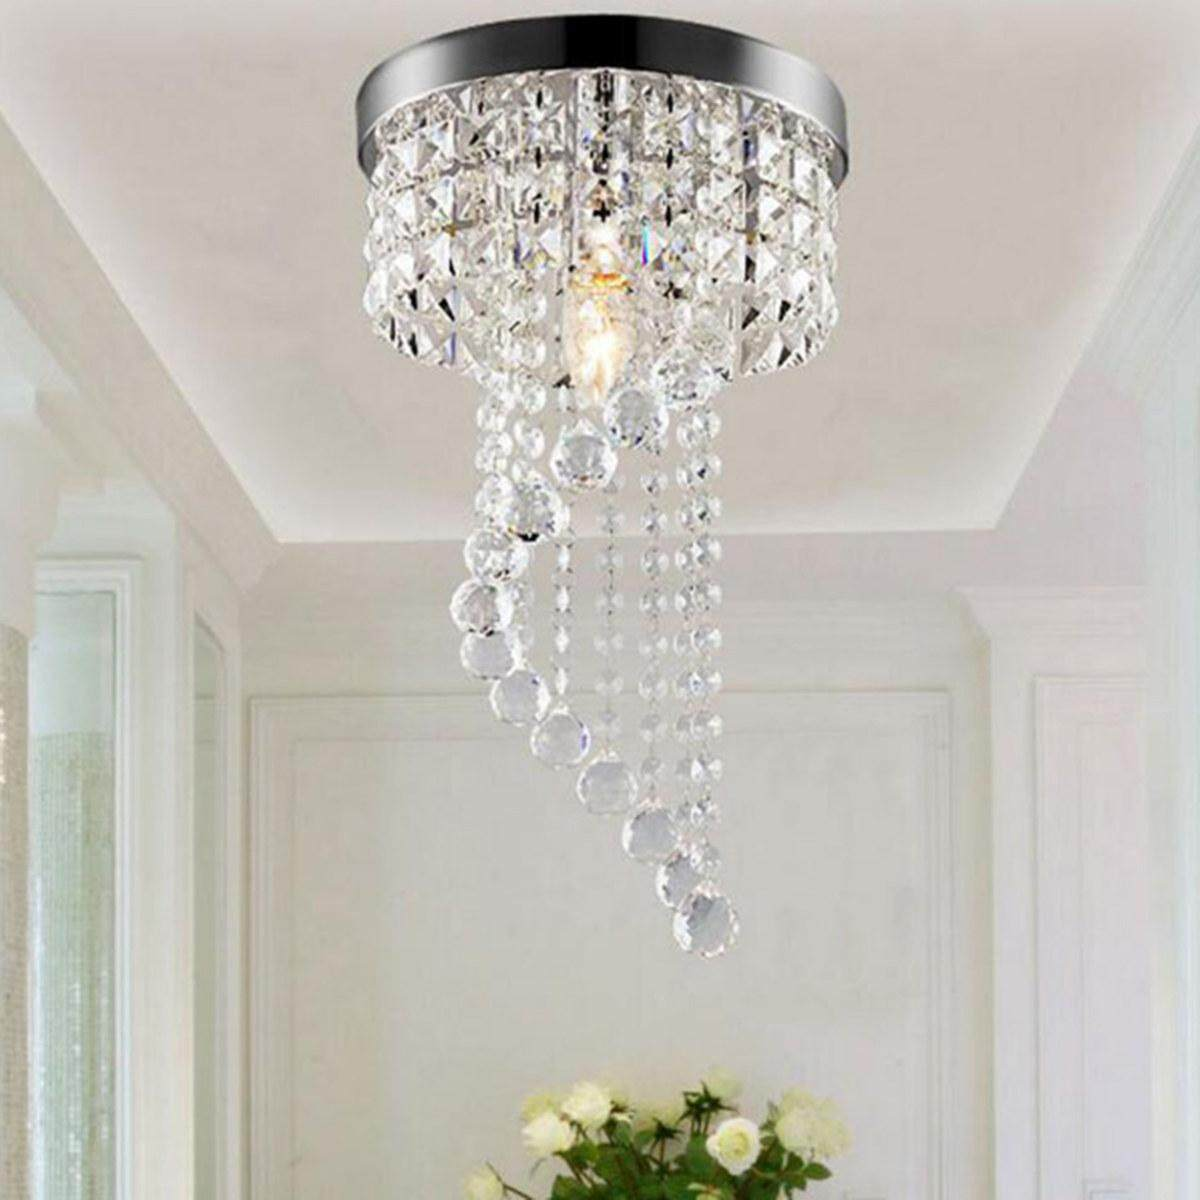 Modern LED Galaxy Spiral Crystal Chandelier Lamp Fixture Lighting Pendant Decor # 110V